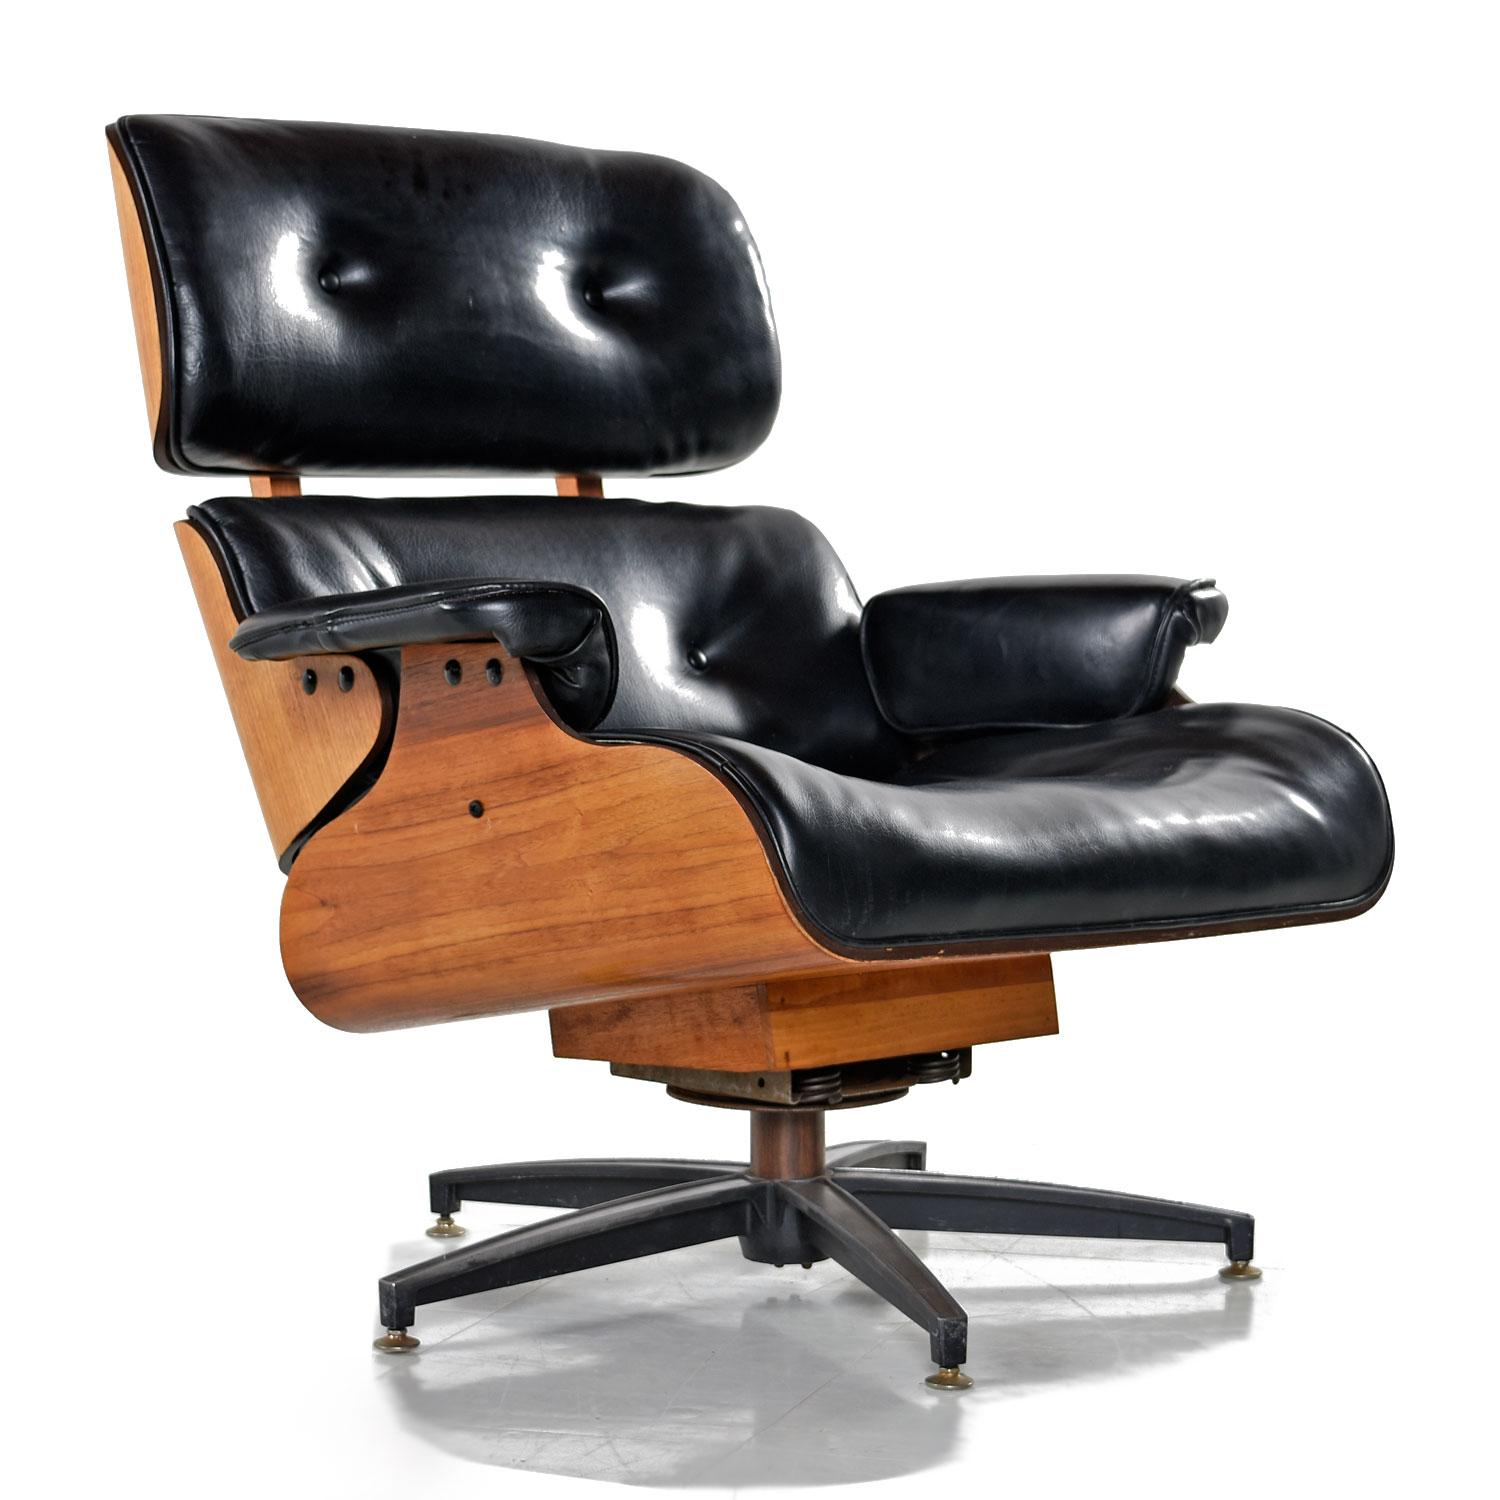 Marvelous Mid Century Modern Eames Style Recliner Made In Canada Gamerscity Chair Design For Home Gamerscityorg